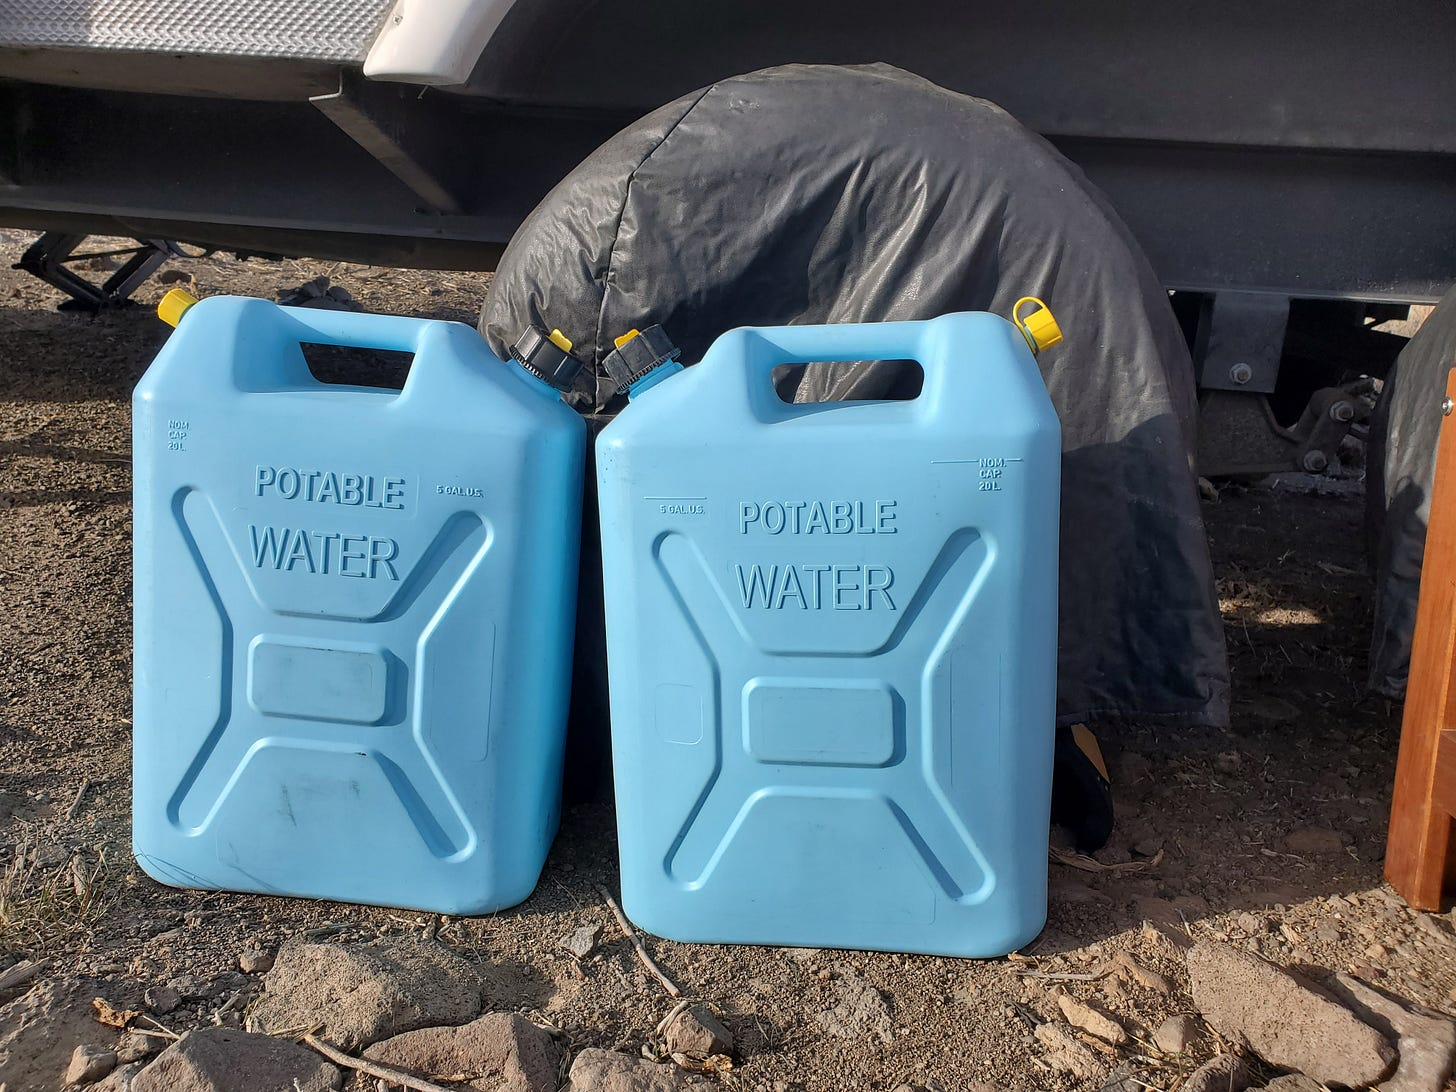 Two blue plastic containers that say Potable Water on the ground in front of a wheel of the travel trailer.